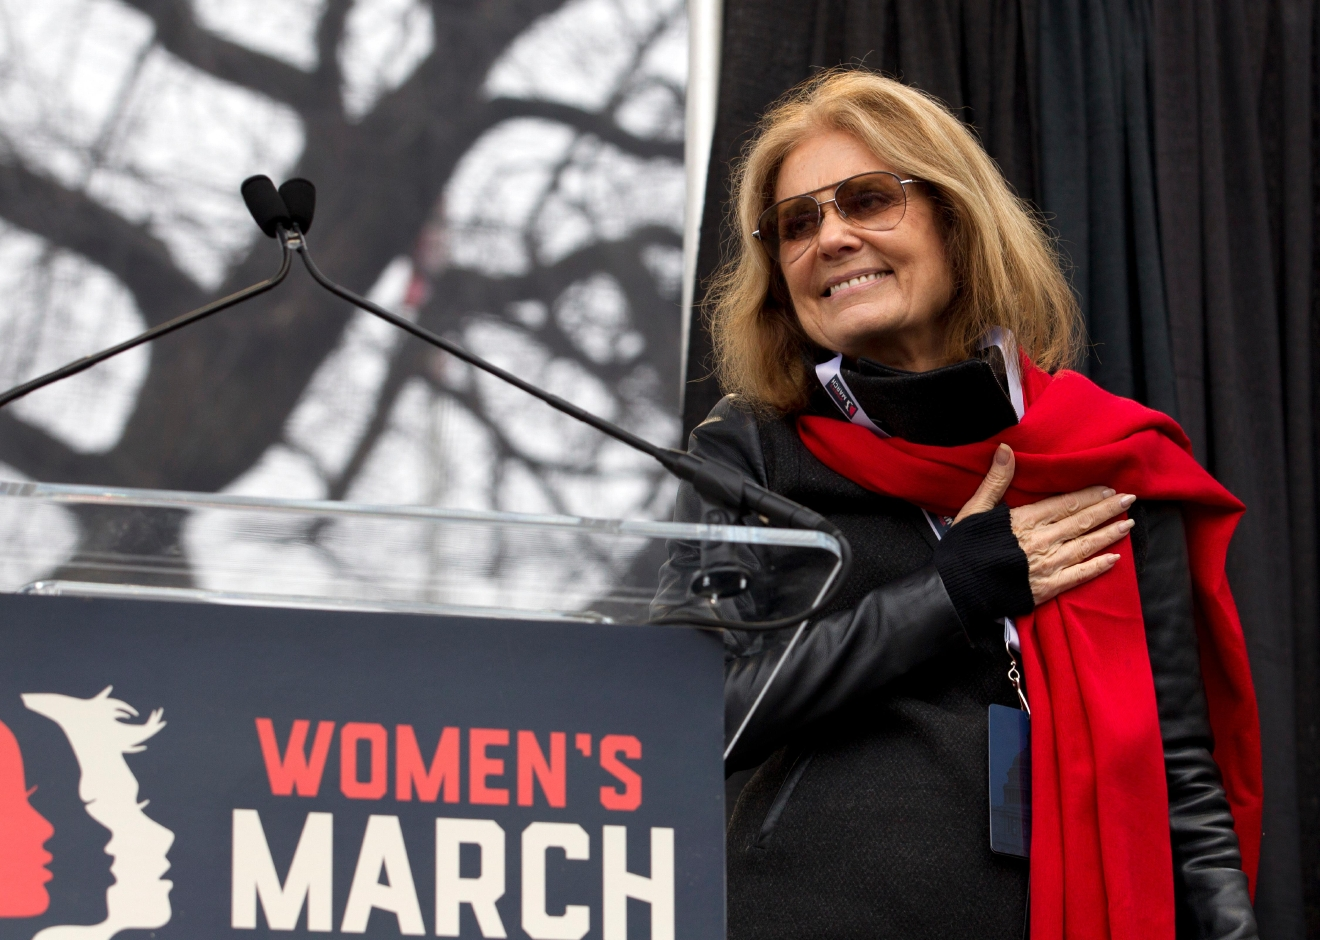 Writer and political activist, Gloria Steinem speak to the crowd during the women's march rally, Saturday, Jan. 21, 2017 in Washington. Organizers of the Women's March on Washington expect more than 200,000 people to attend the gathering. Other protests are expected in other U.S. cities. ( AP Photo/Jose Luis Magana)